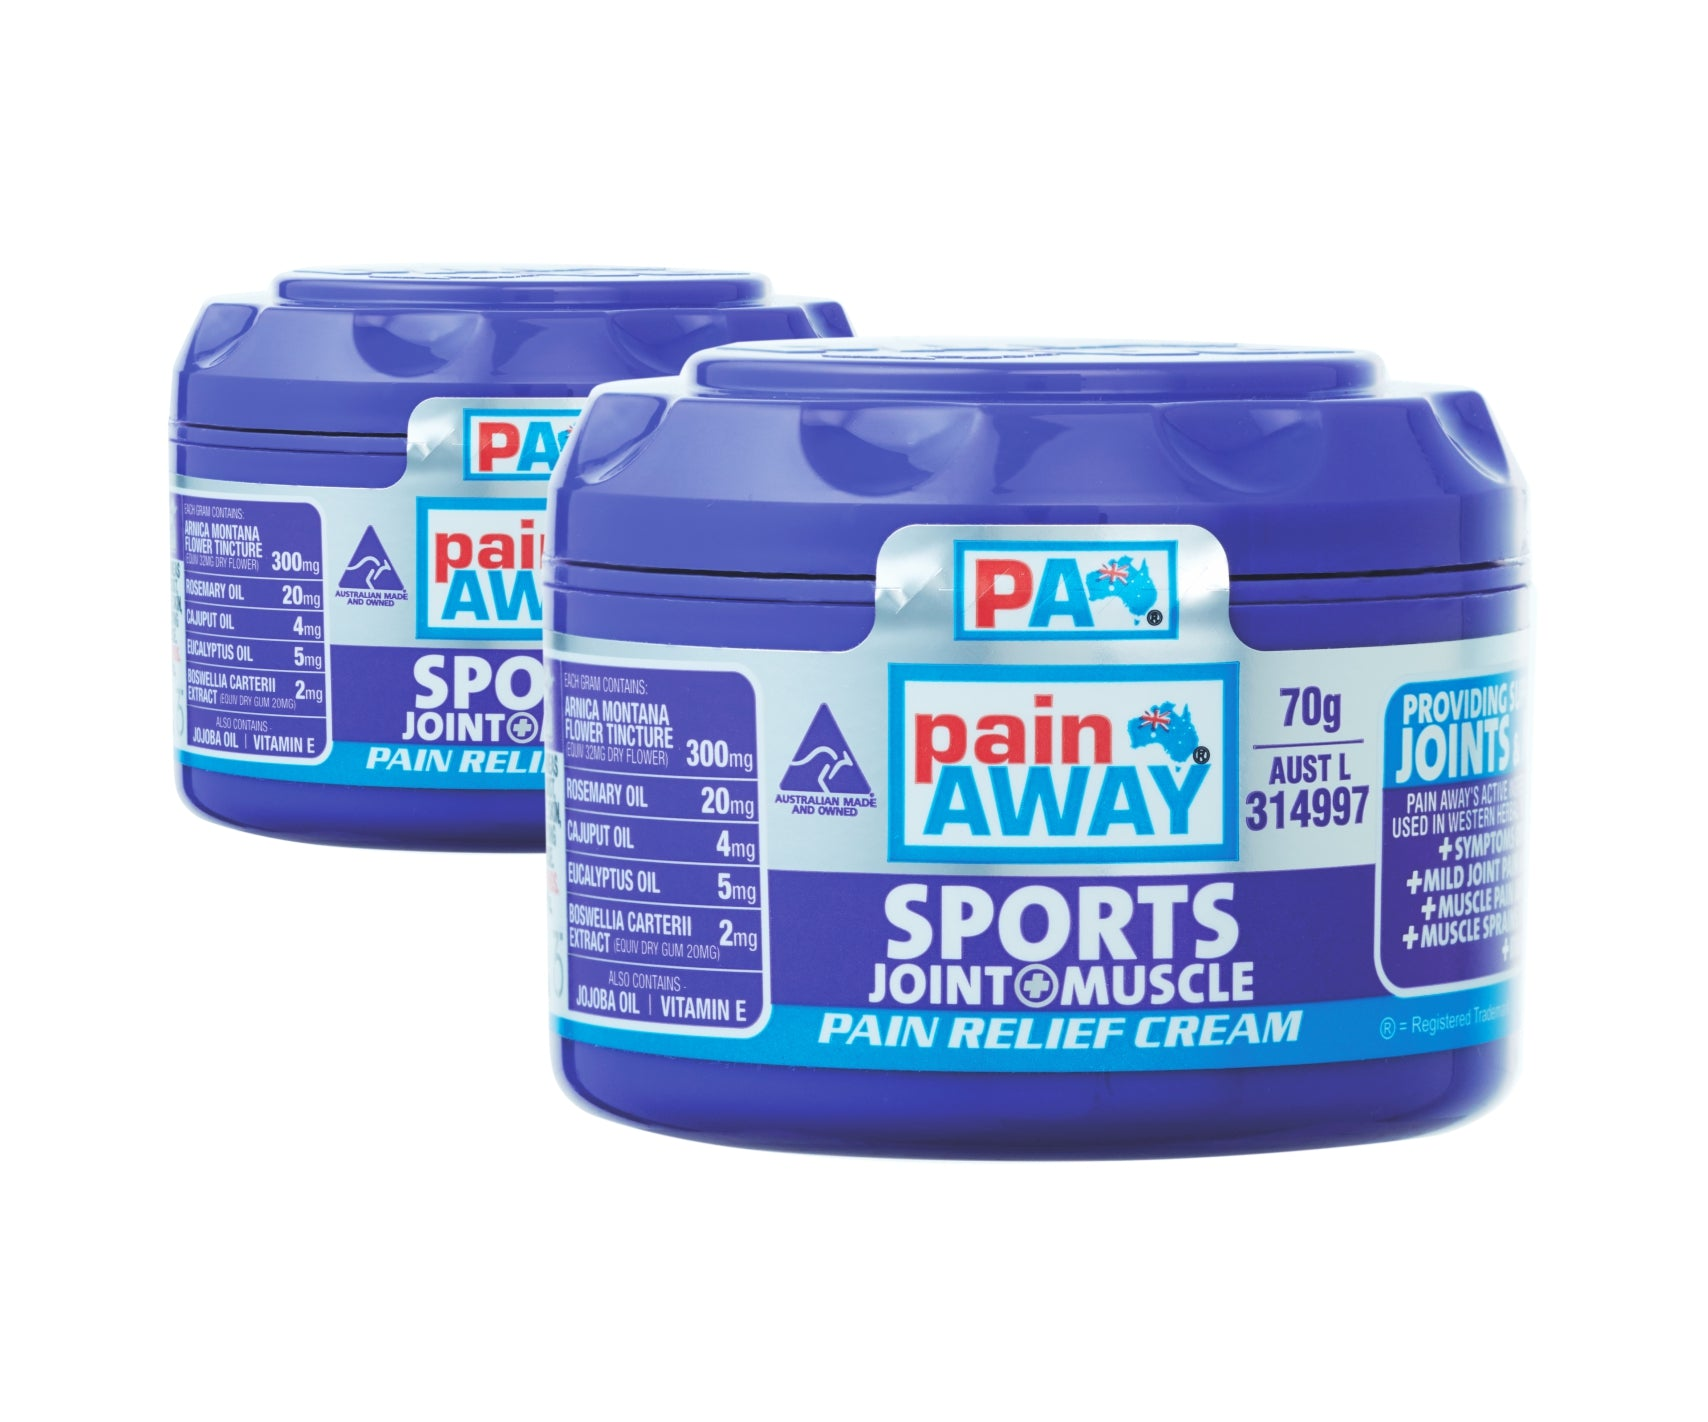 2 x PAIN AWAY SPORTS - JOINT & MUSCLE PAIN RELIEF <br> CREAM 70G